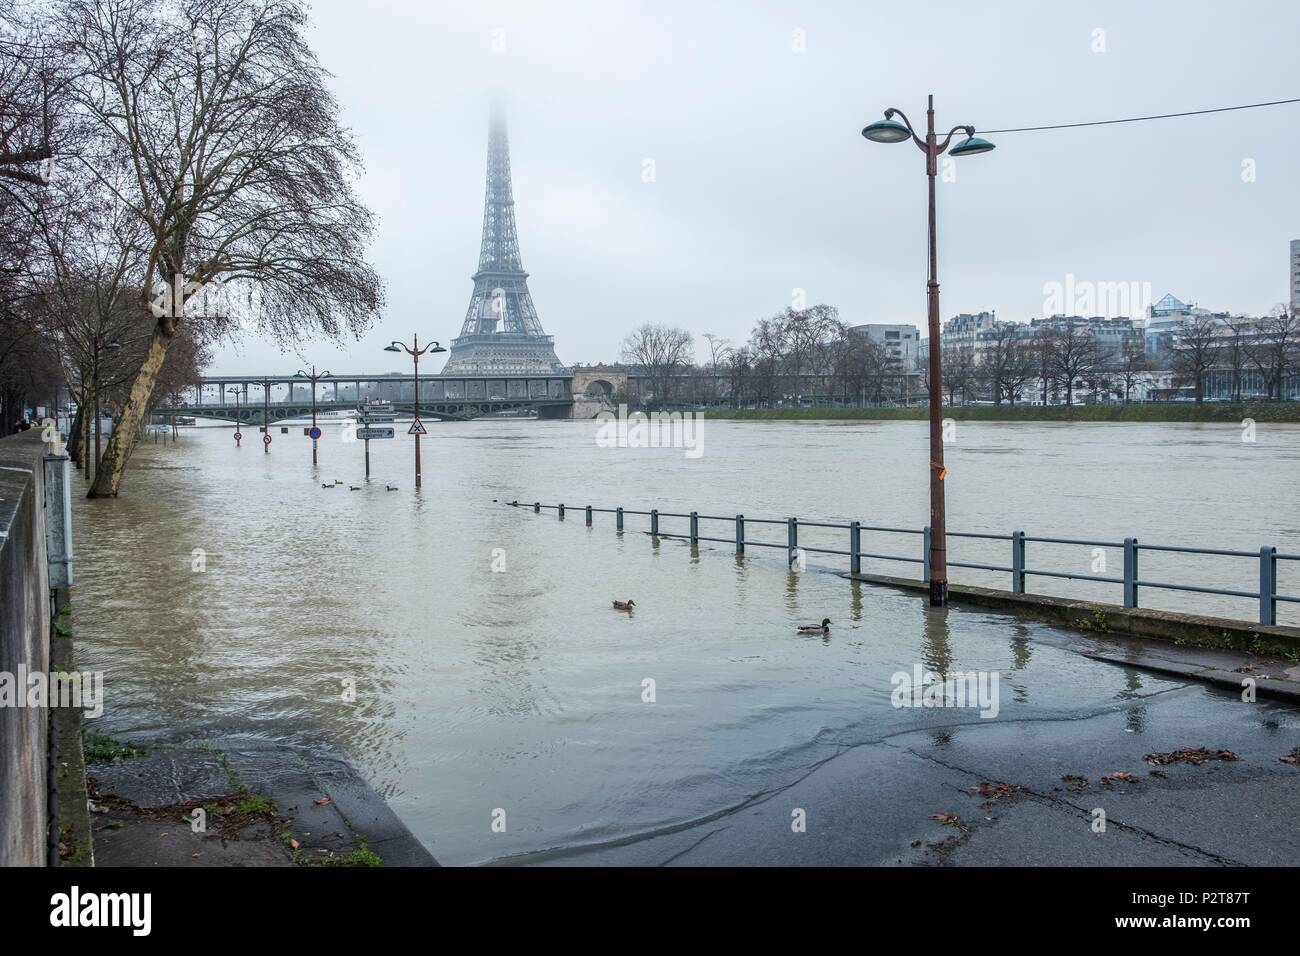 France, Paris, area listed as World Heritage by UNESCO, the flood of the Seine river, right bank flooded right, the Bir Hakeim bridge and the Eiffel Tower - Stock Image